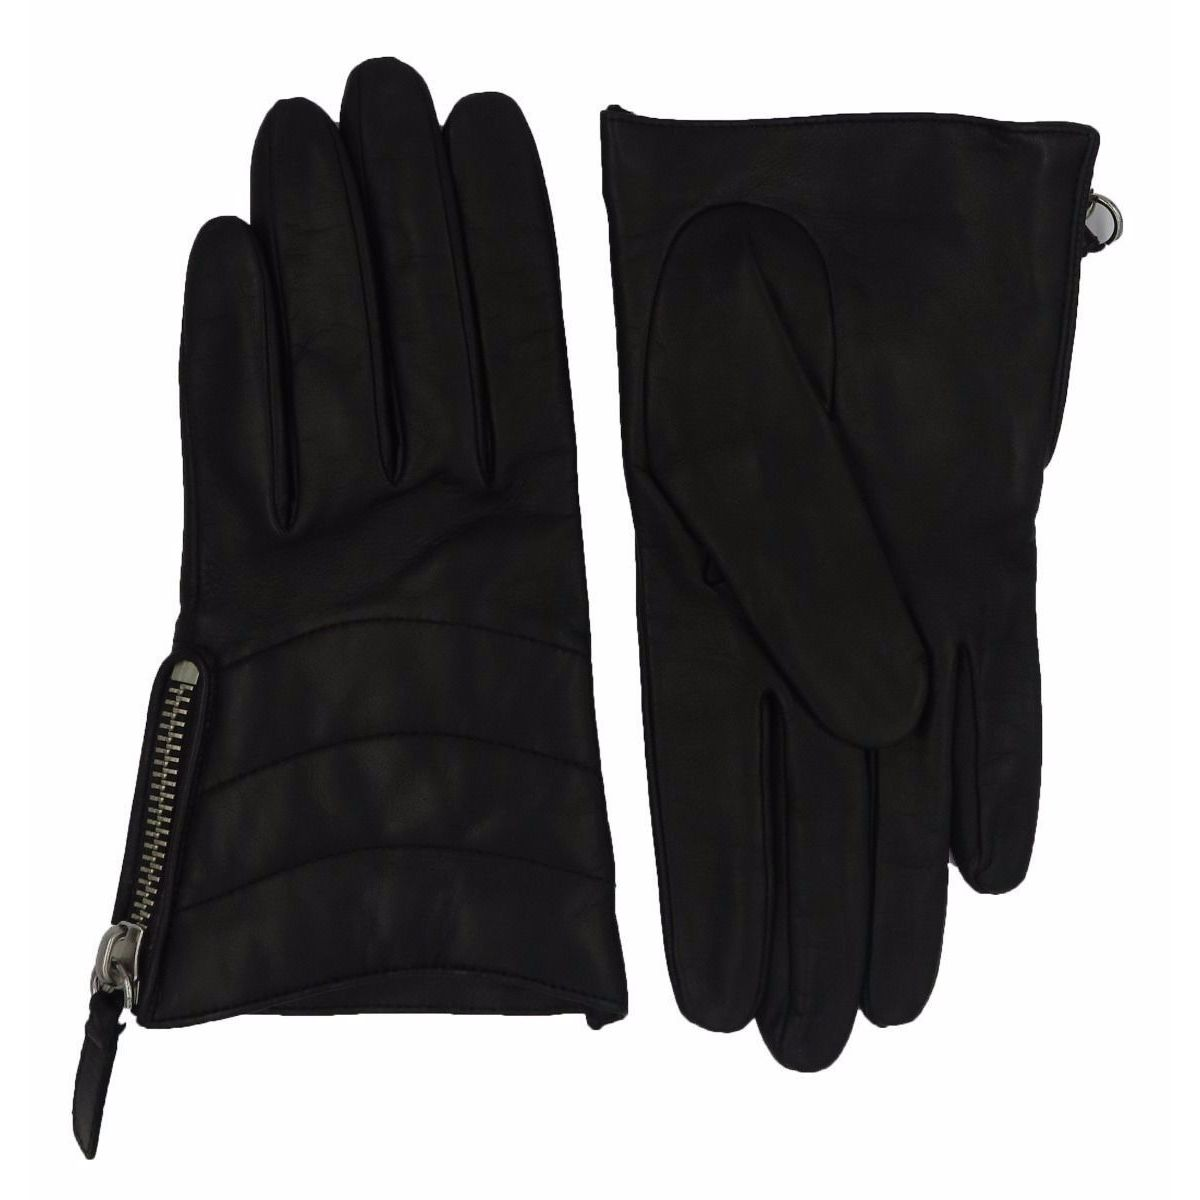 Coach Black Leather Quilted Zippered Gloves (7), Women's,...